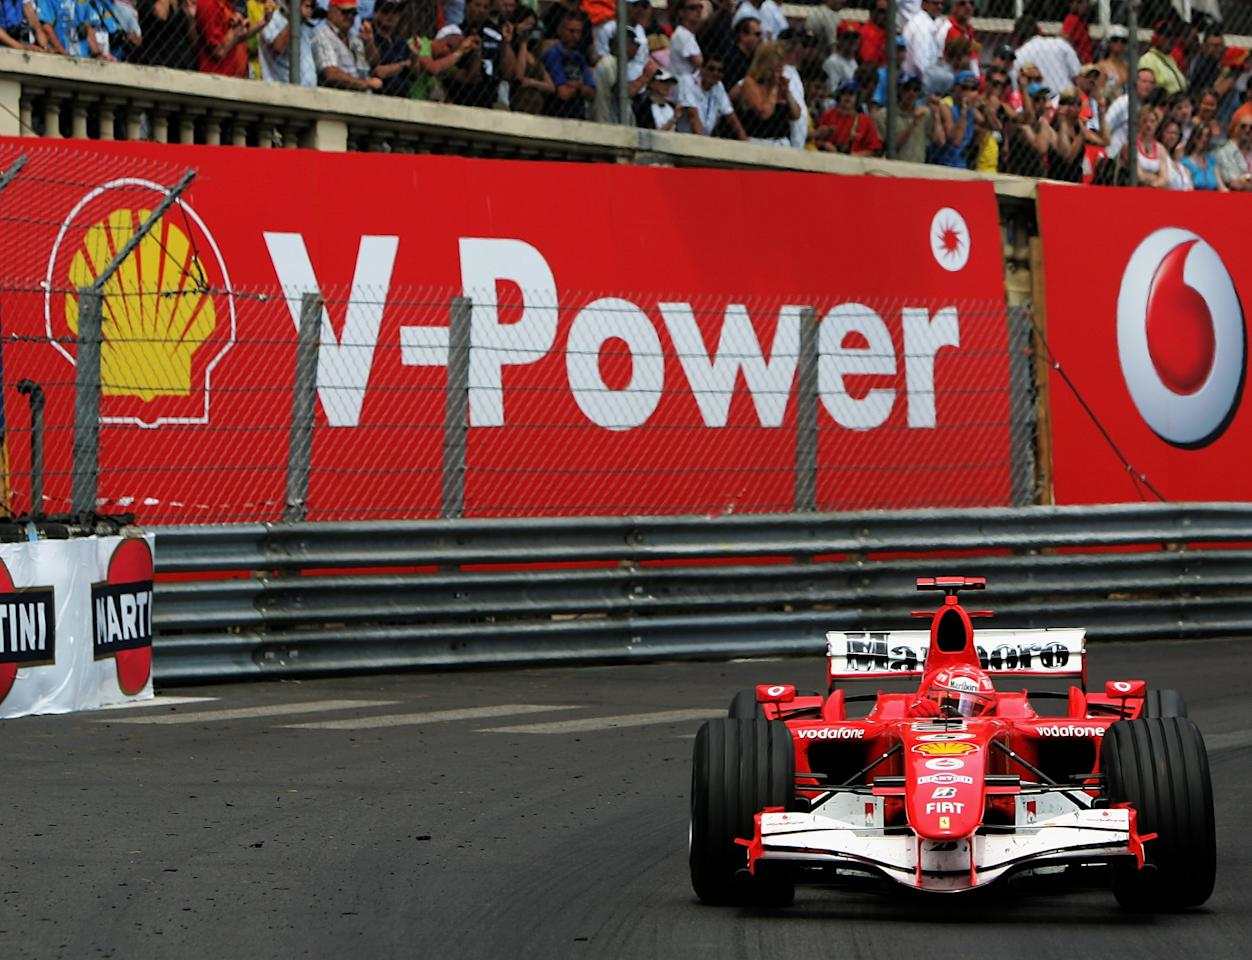 MONTE CARLO, MONACO - MAY 28:  Michael Schumacher of Germany and Ferrari in action during the Monaco Formula One Grand Prix at the Monte Carlo Circuit on May 28, 2006, in Monte Carlo, Monaco.  (Photo by Getty Images for Shell)